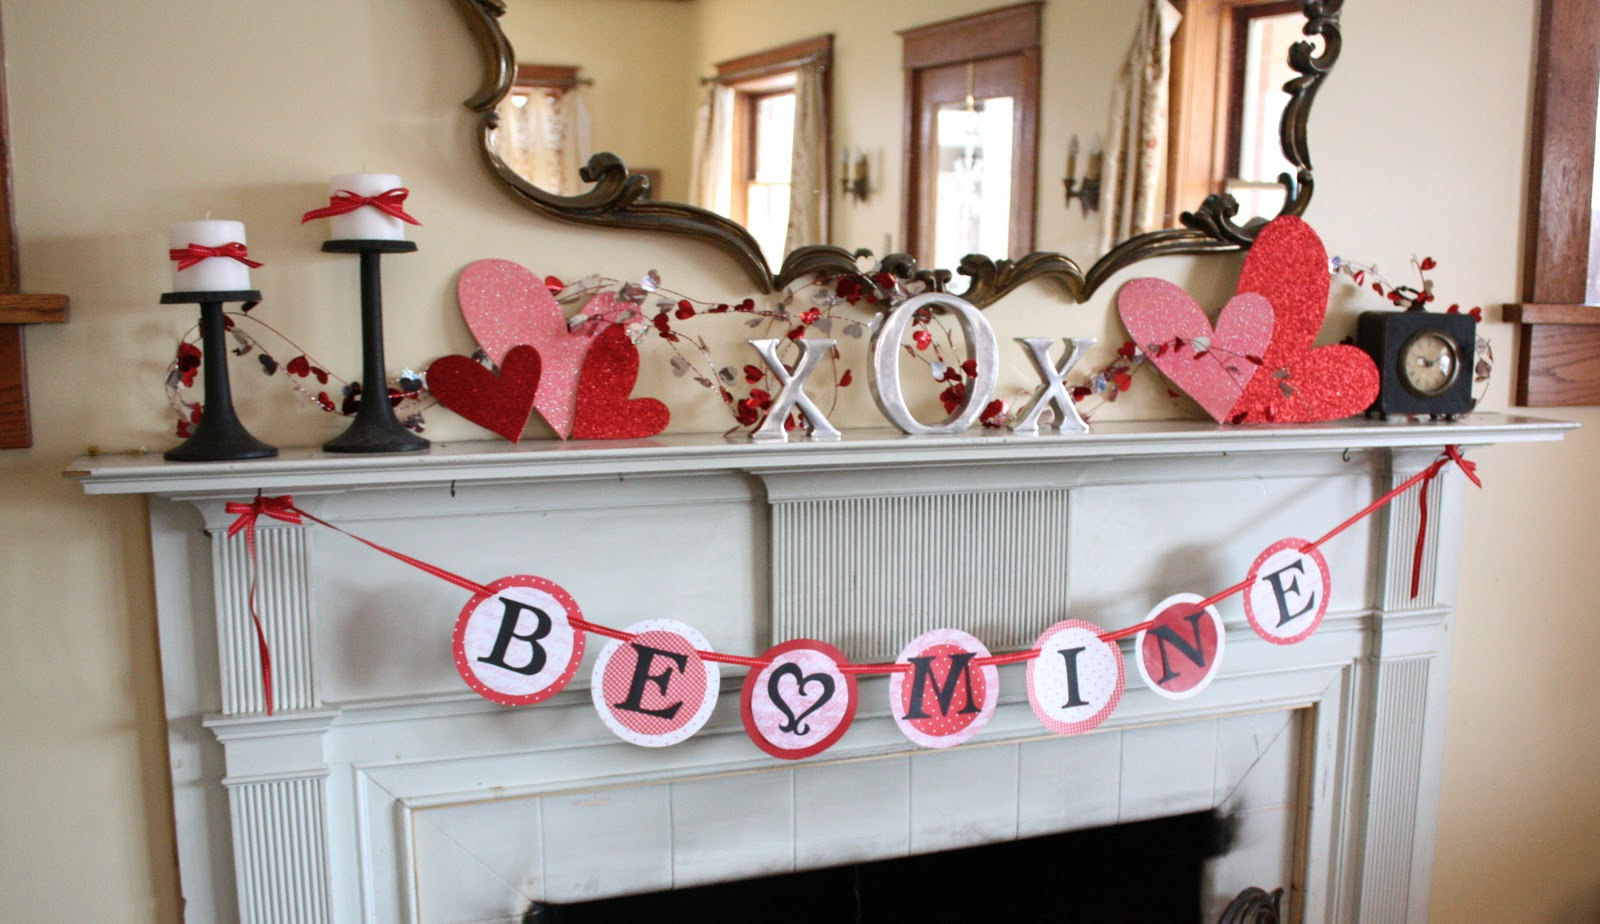 valentine's day decorations ideas 2014 to decorate bedroom ...